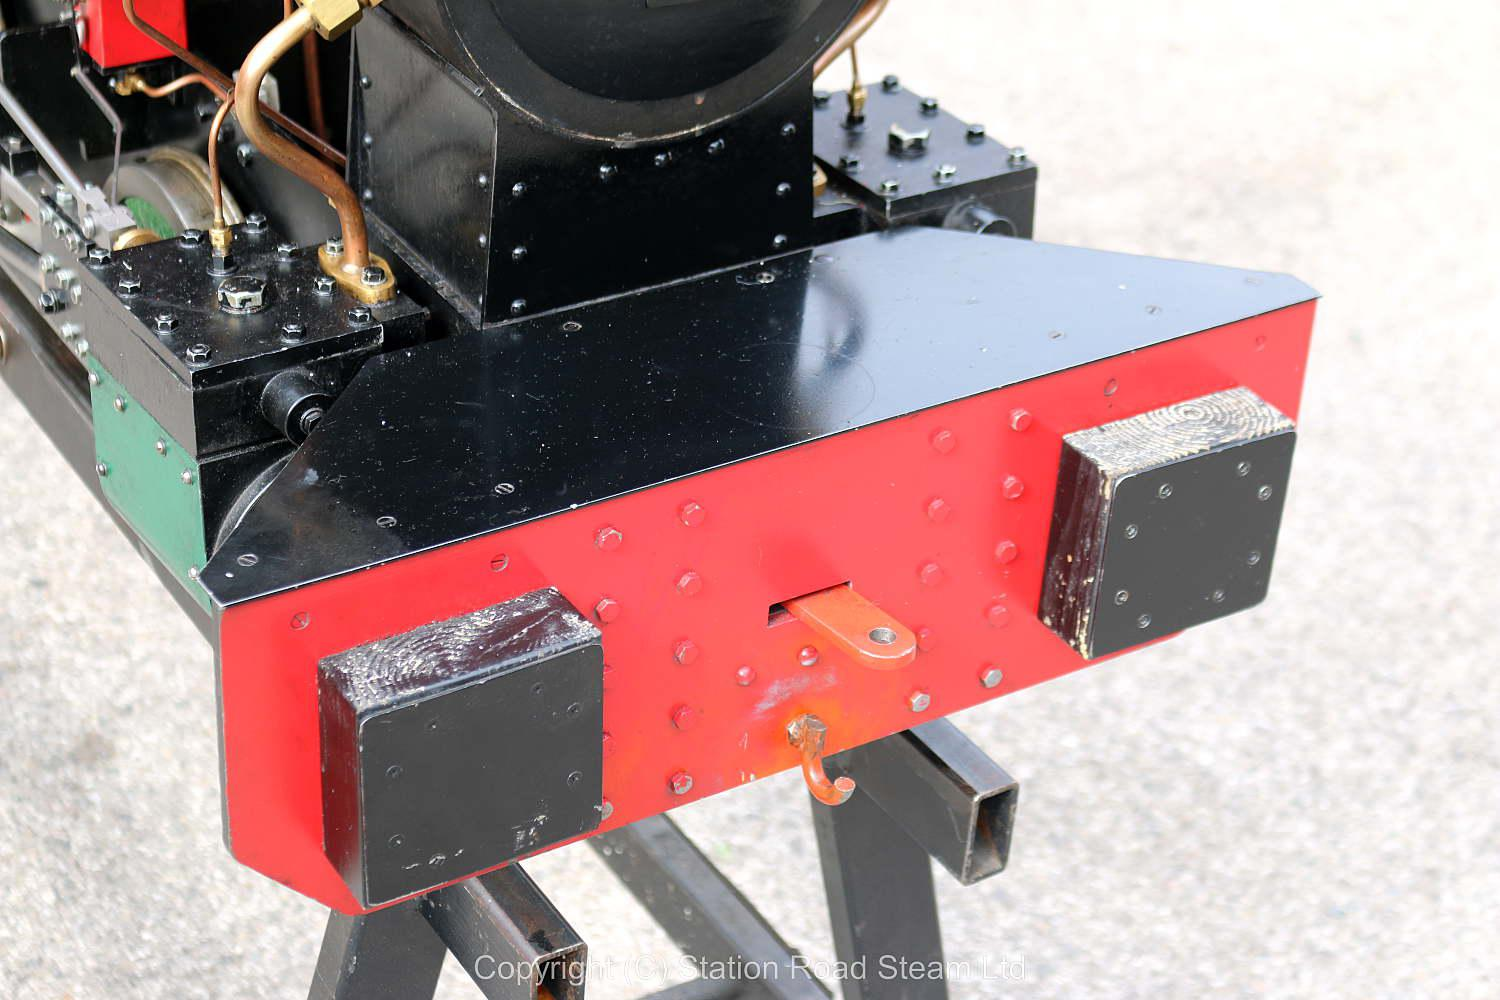 7 1/4 inch gauge Sweet William 0-4-0